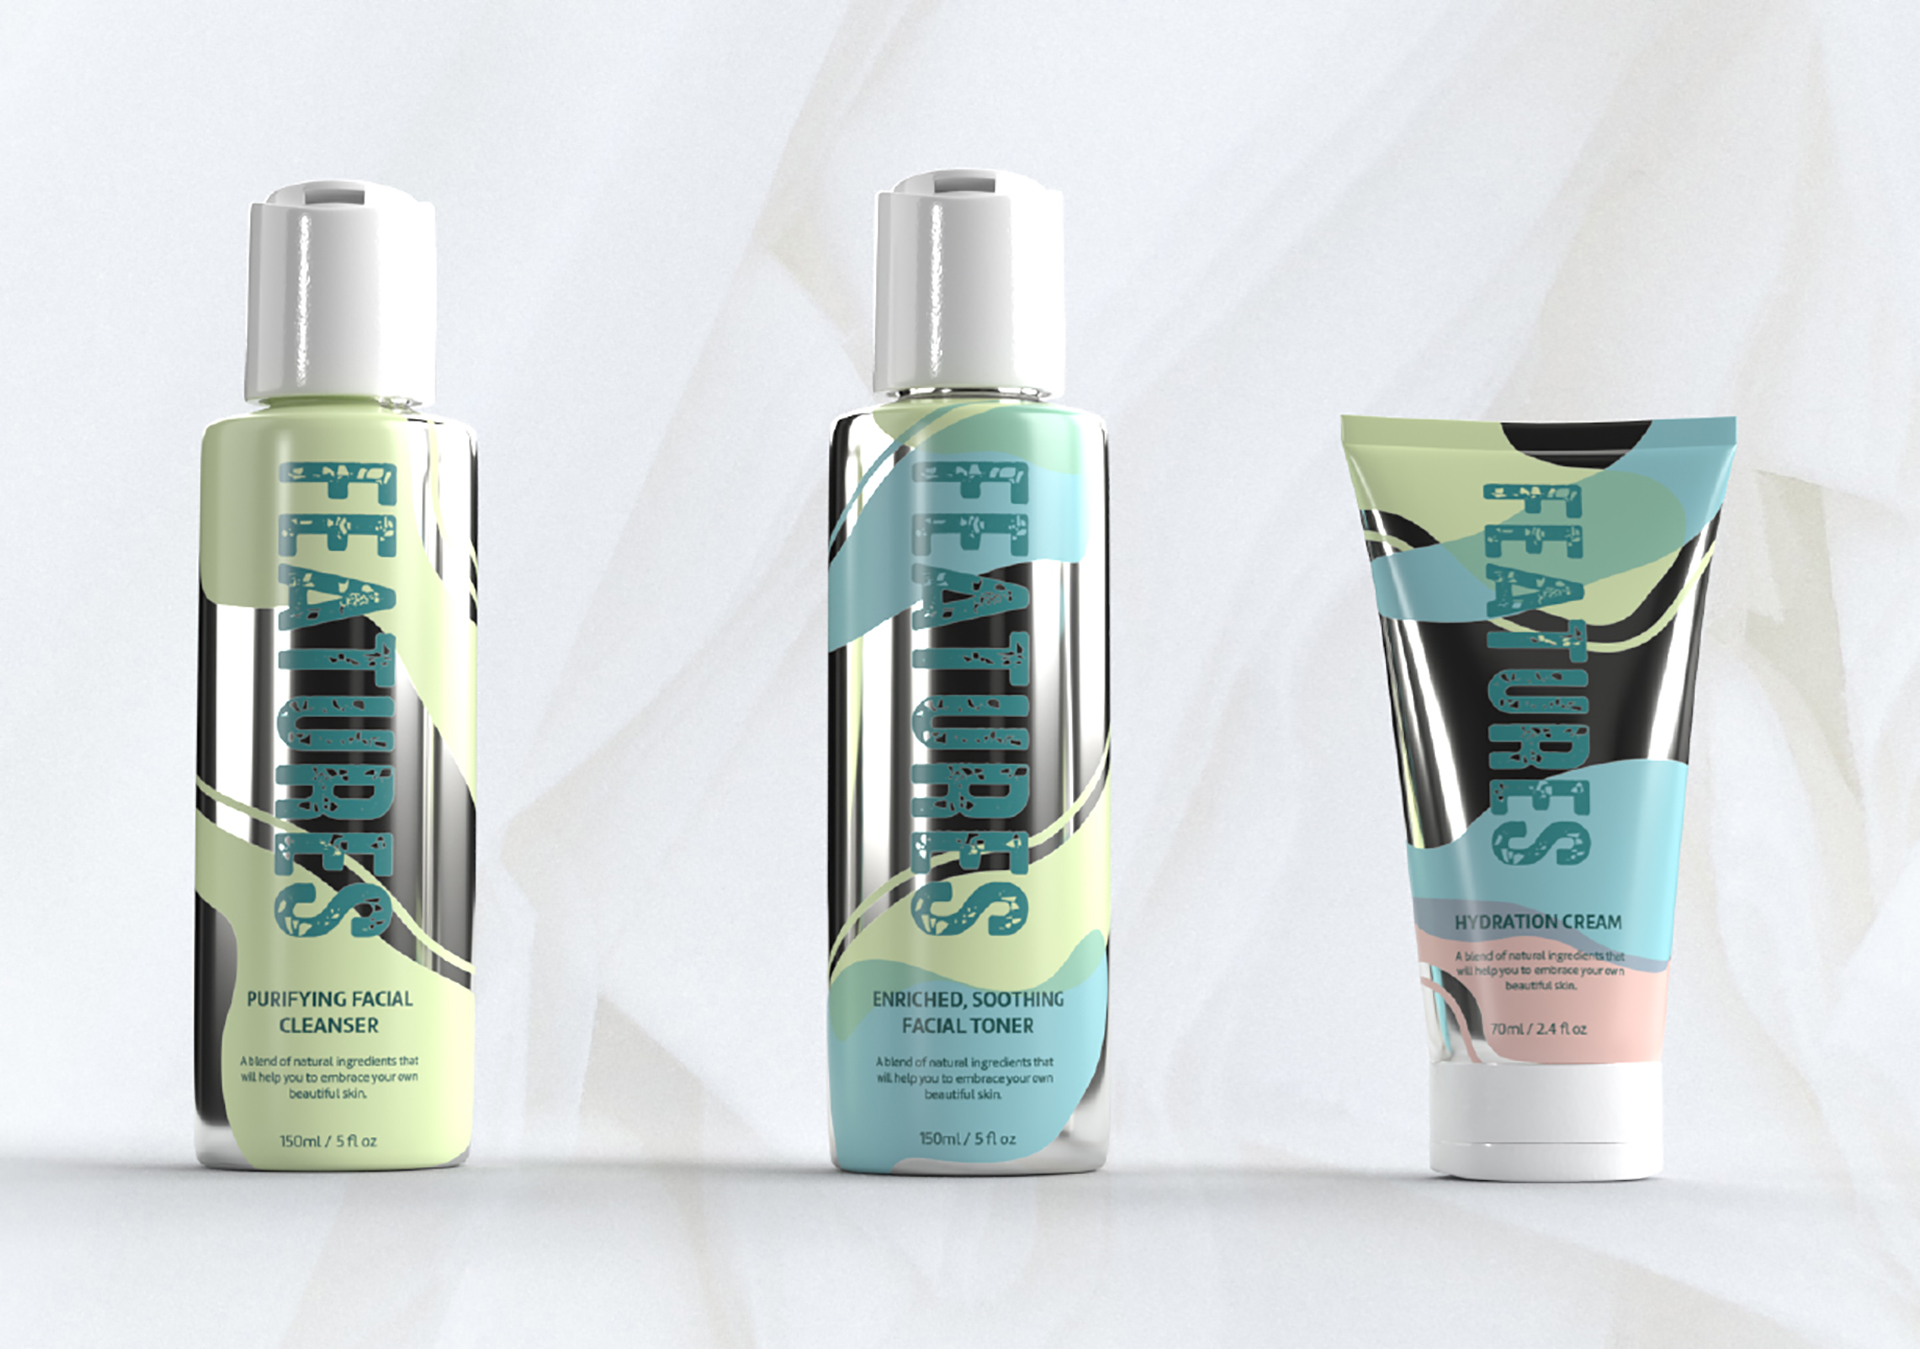 A photograph of 3 items of cosmetics packaging with the logo for the brand 'Features'